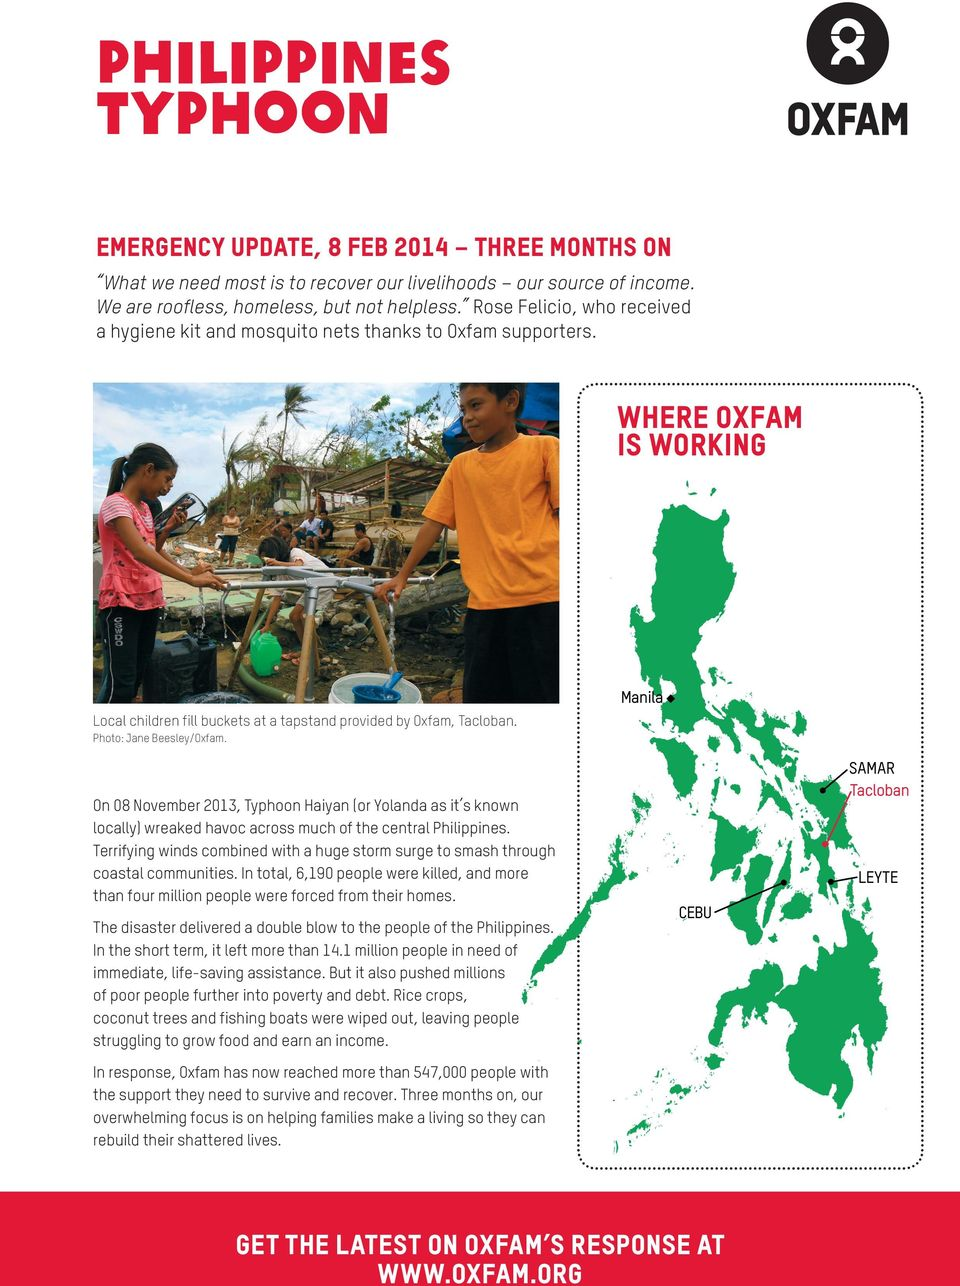 Haiyan (or Yolanda as it s known locally) wreaked havoc across much of the central Philippines Terrifying winds combined with a huge storm surge to smash through coastal communities In total, 6,190